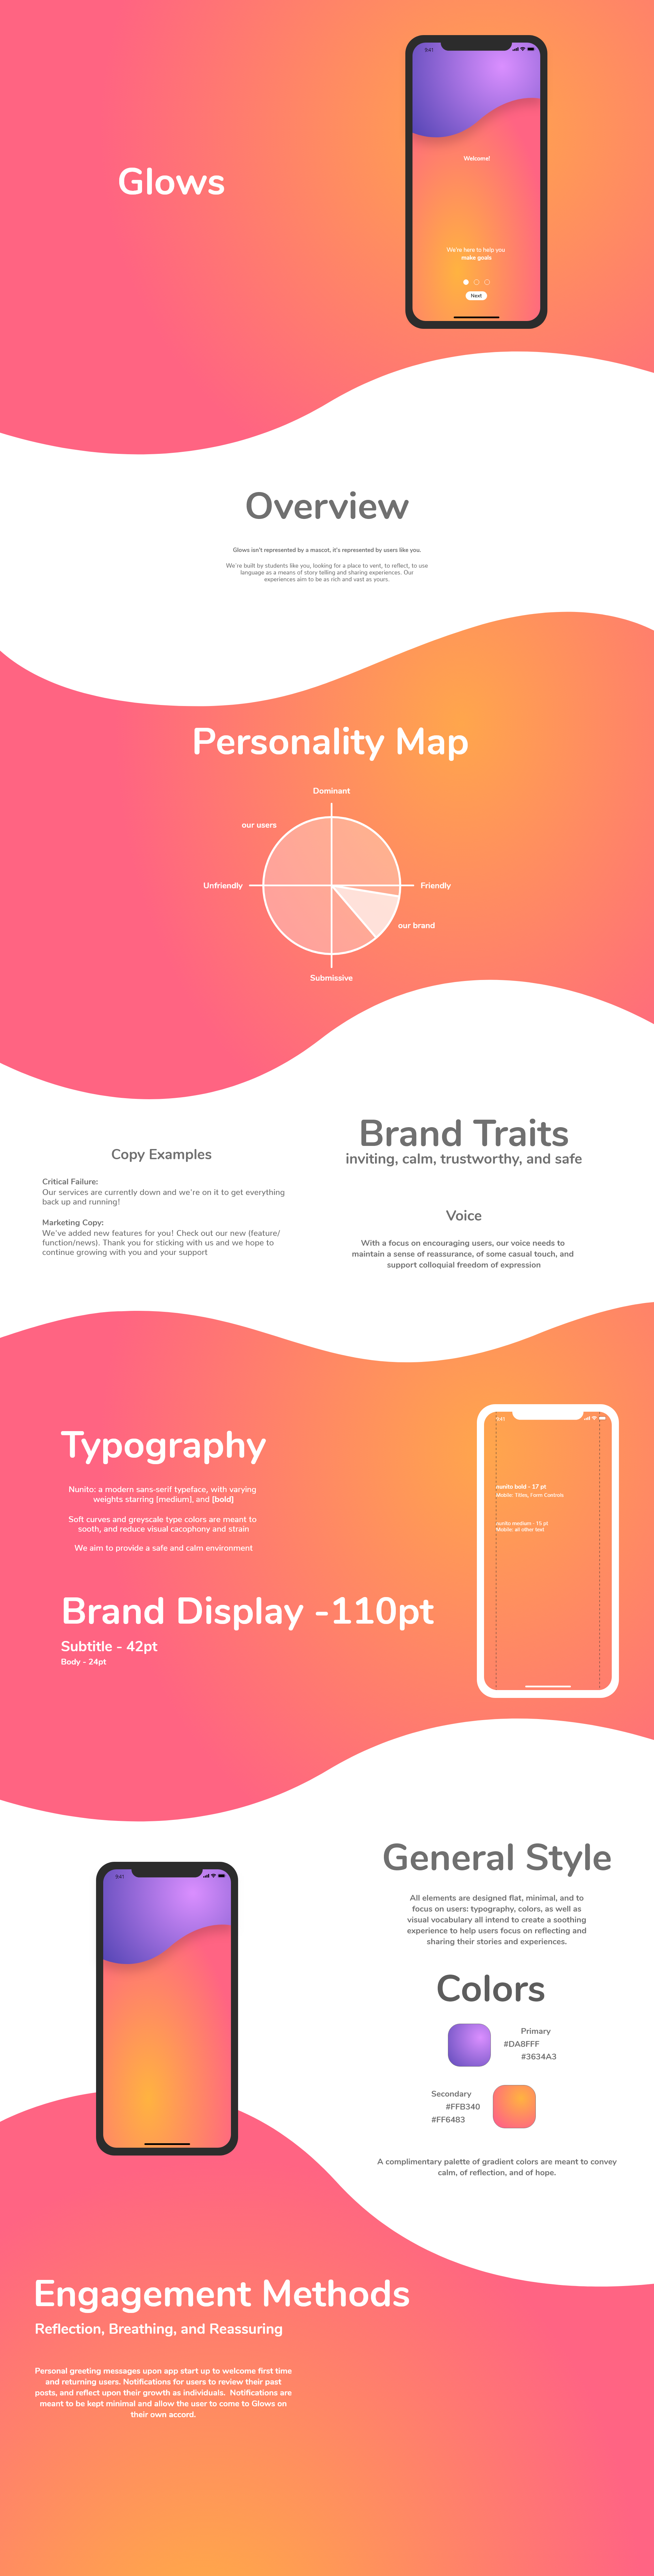 Glows app including mock ups, brand traits, typography and color choices.